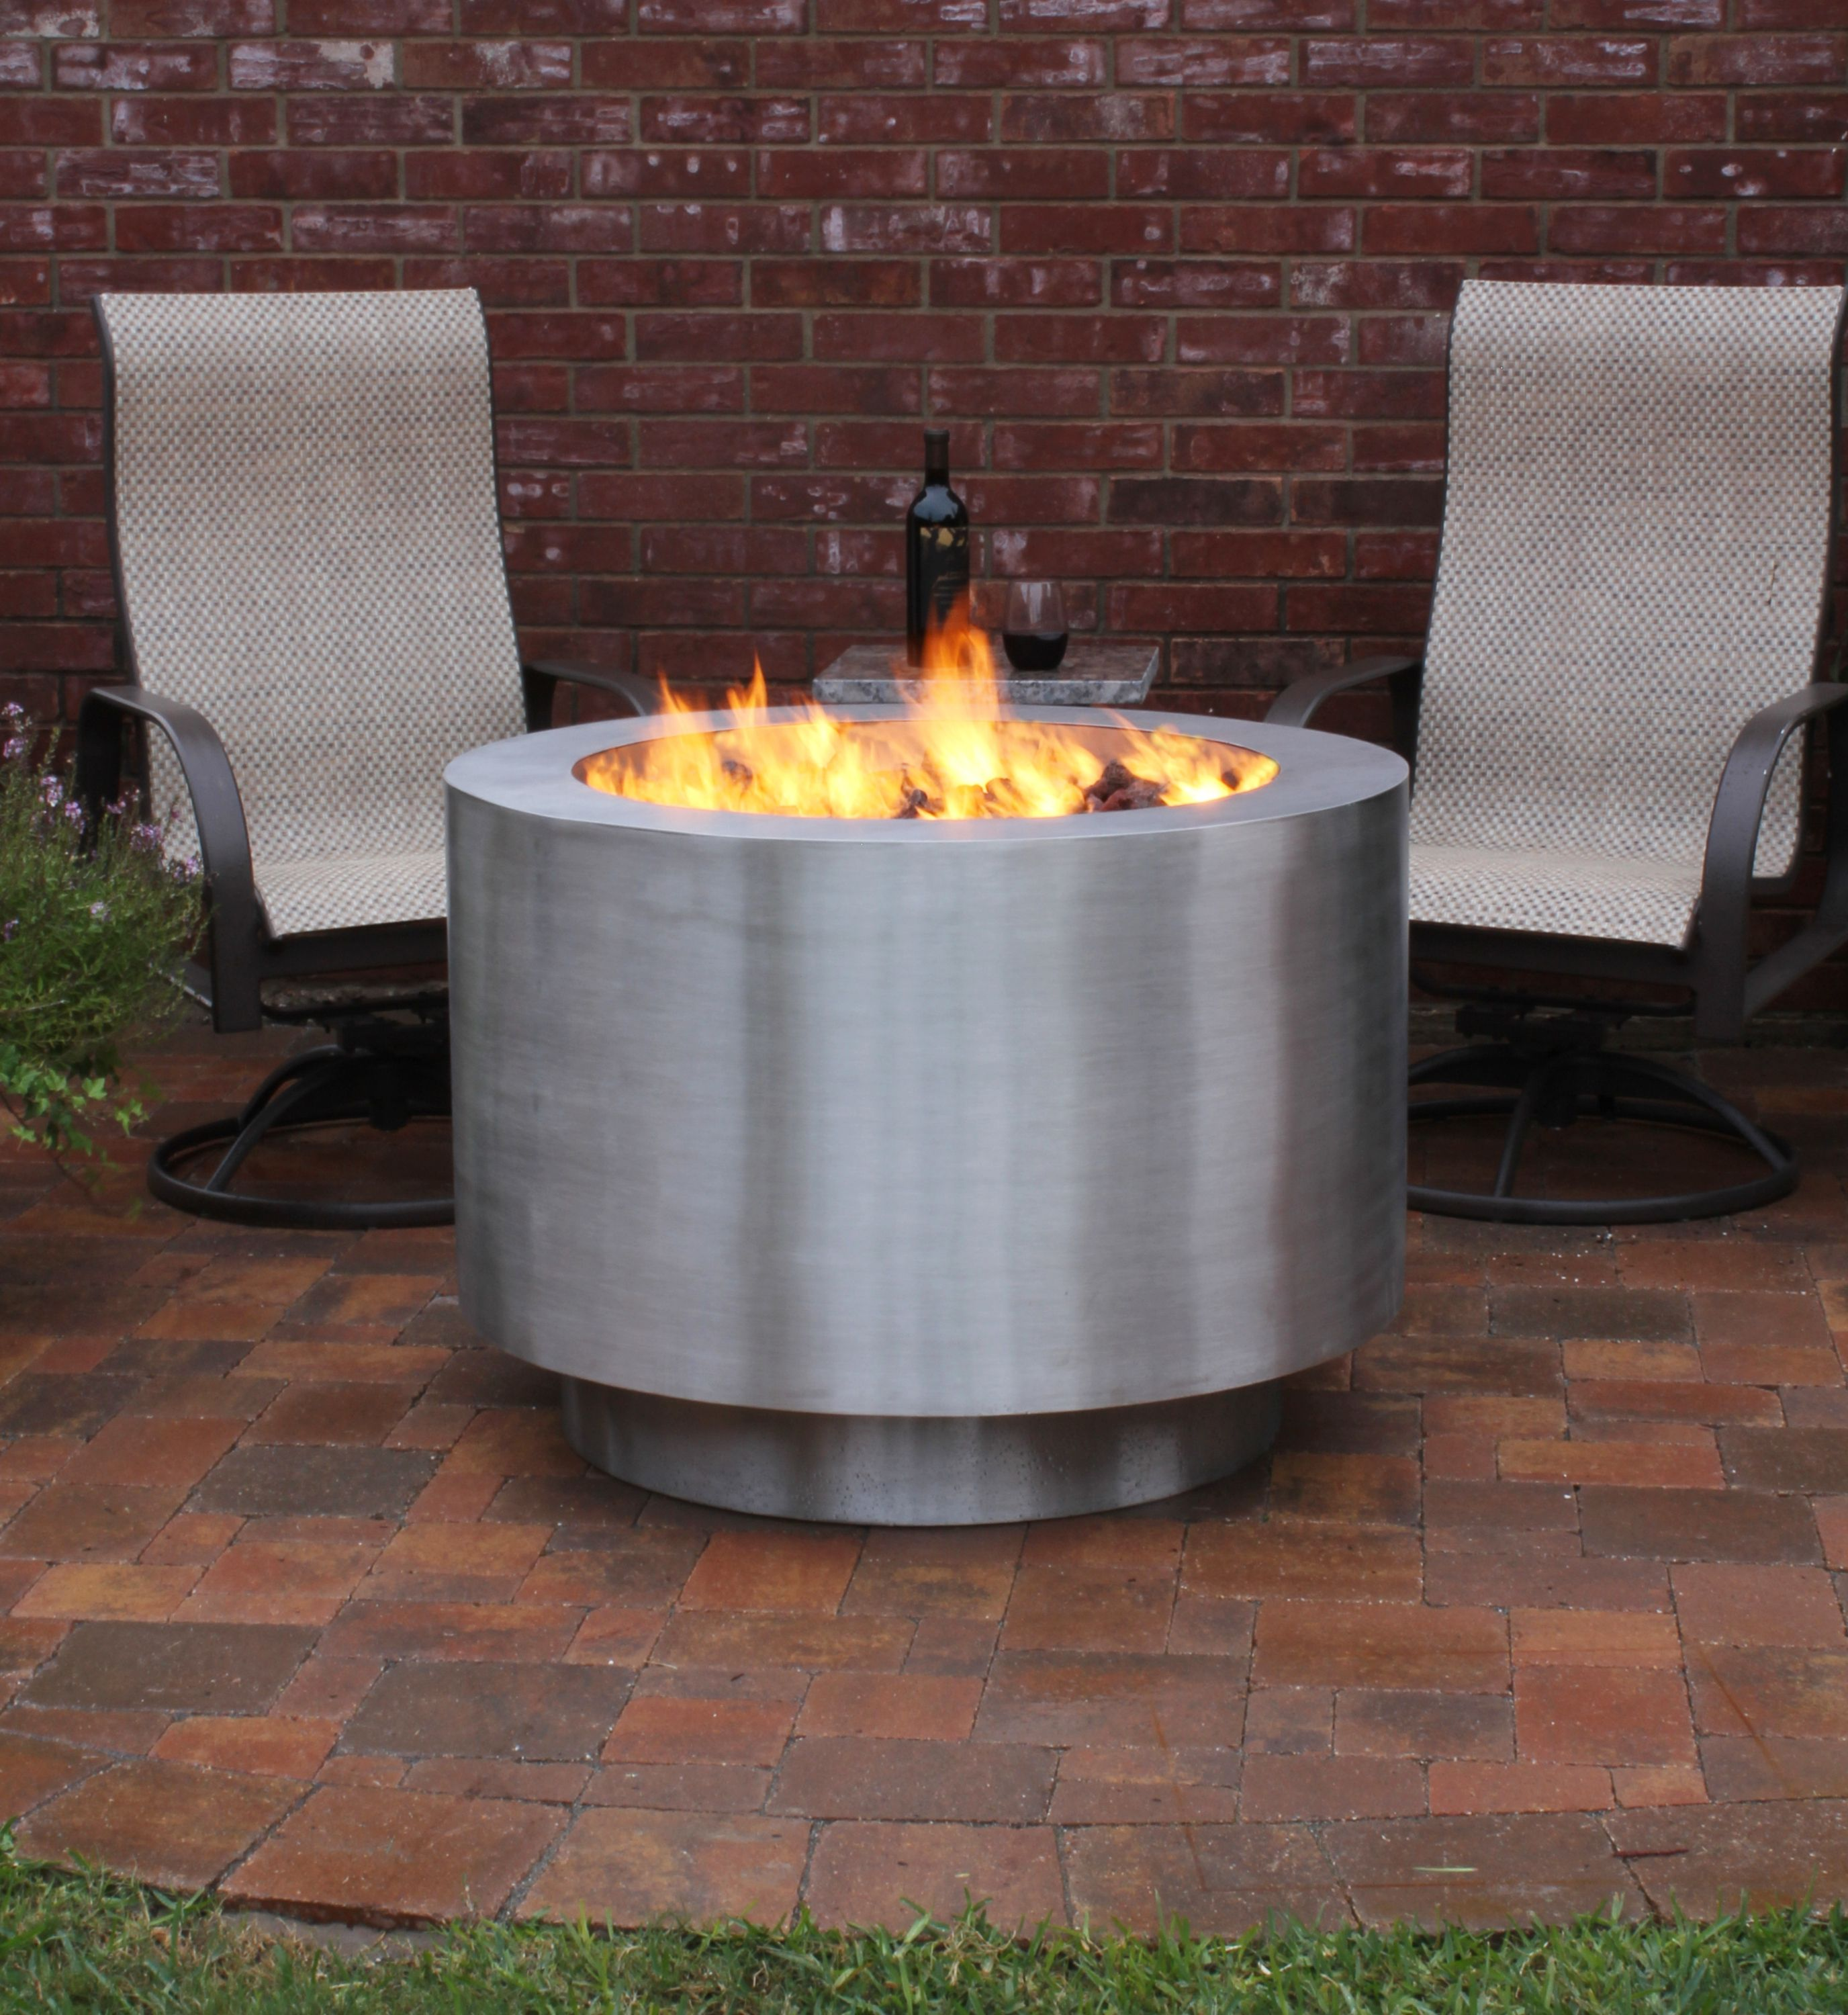 84b4f9128f65633f537bf0d9283e9c62 Top Result 50 Lovely Outdoor Gas Fire Bowl